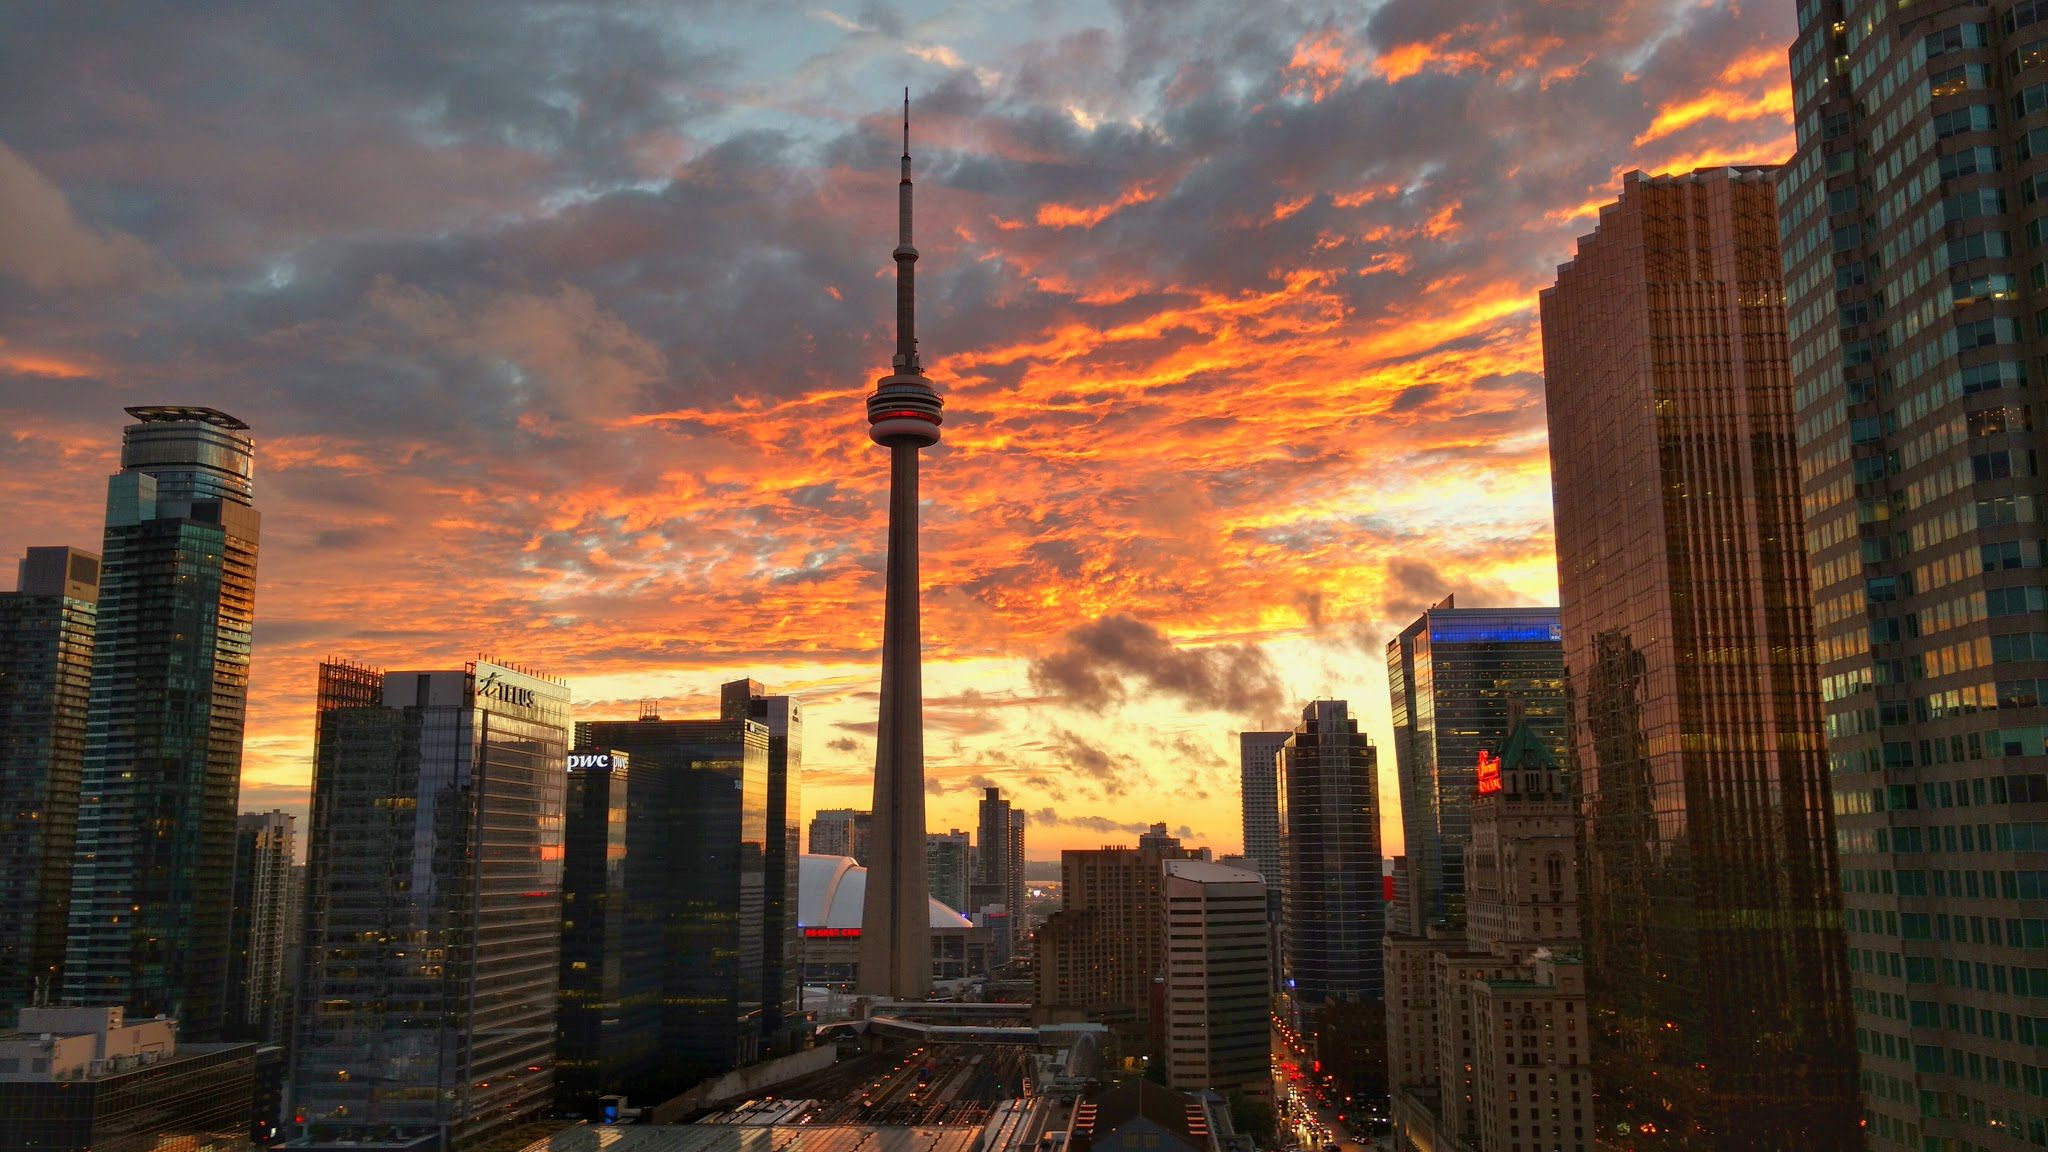 The City Of Toronto Ablaze Oc 2048 X 1152 Wallpaper Background For Ipad Mini Air 2 Wallpaper Backgrounds Aesthetic Desktop Wallpaper Wallpaper Toronto